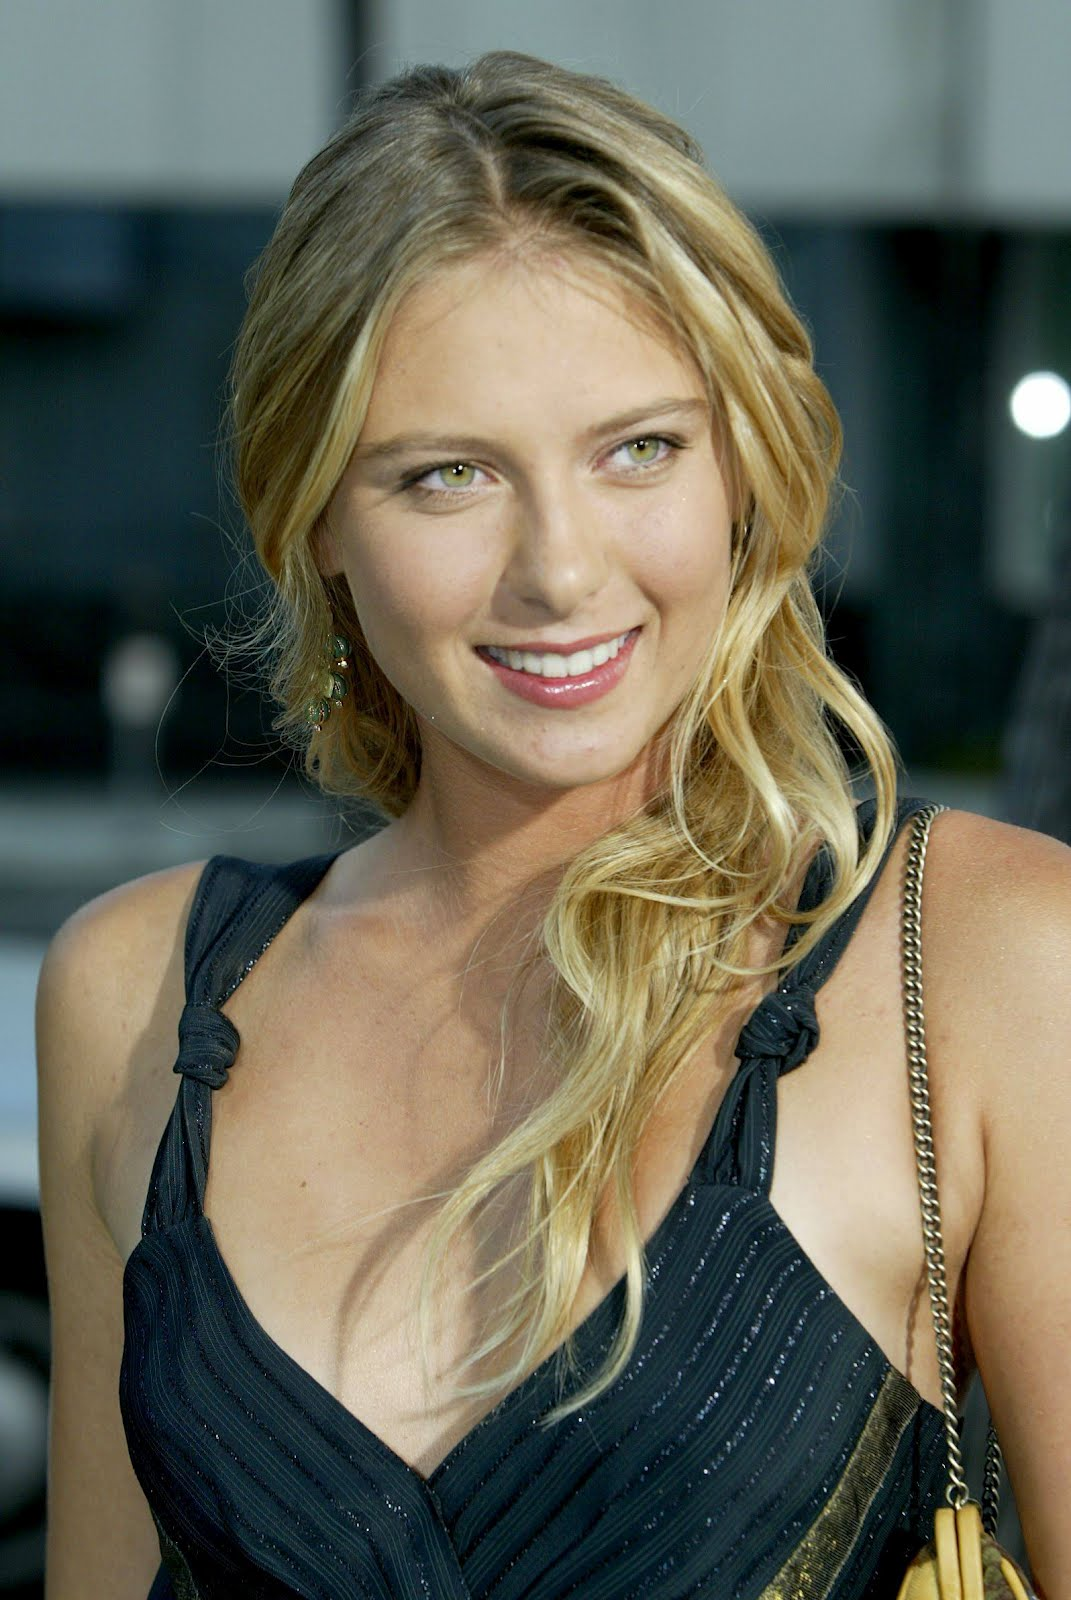 wallpaper charming: maria sharapova wallpapers